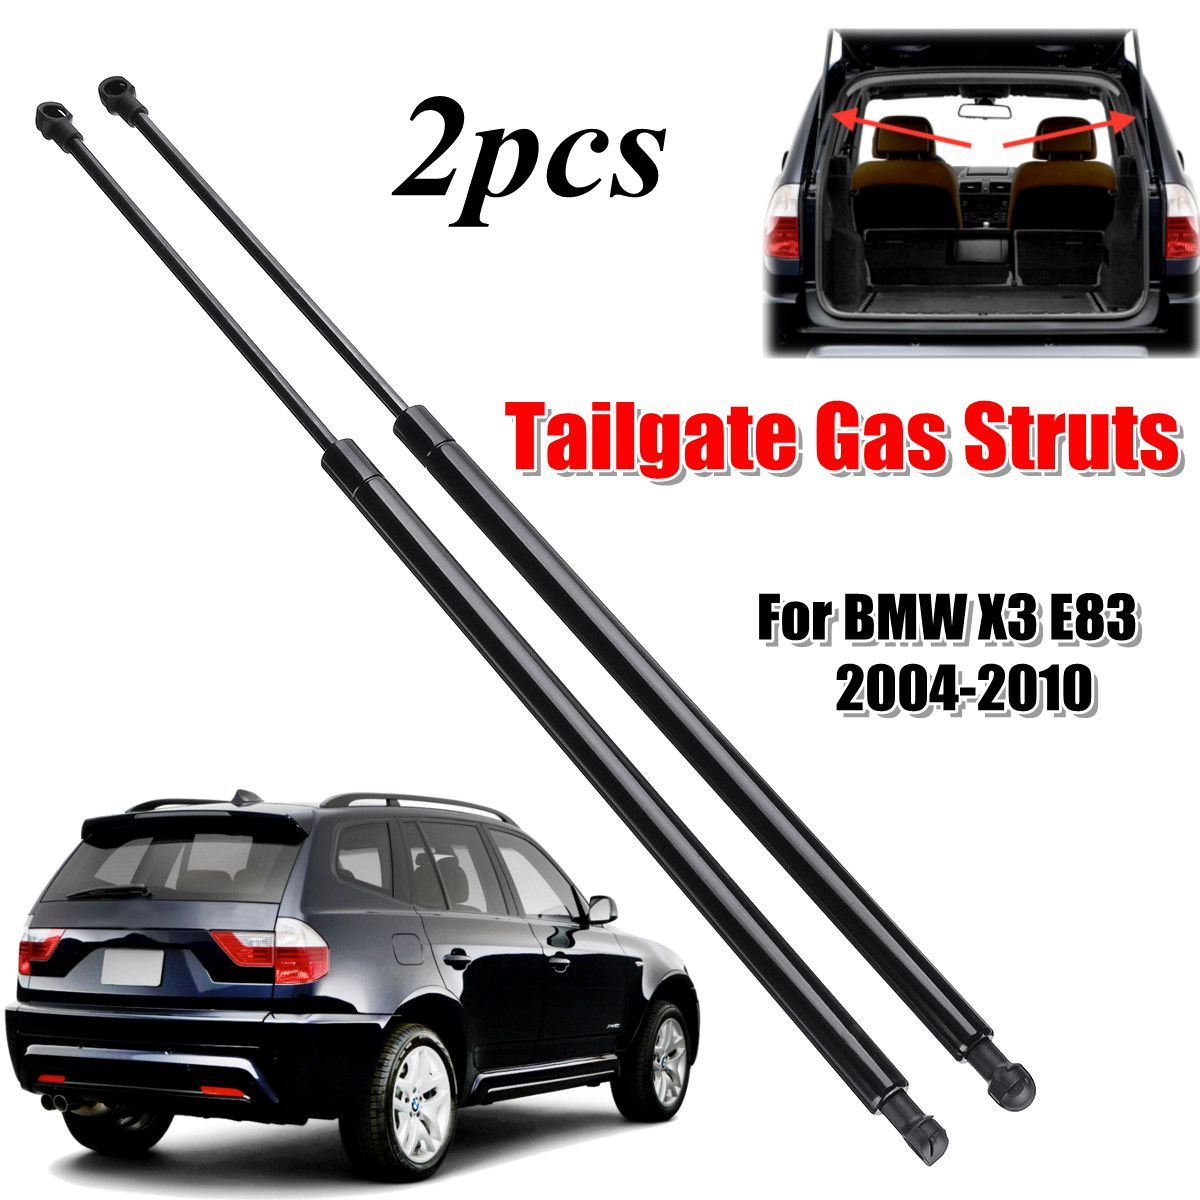 2Pcs Rear Trunk Tailgate Gas Spring Shock Lift Struts Support Rod Arm Bars Bracket 51243400379 For BMW E83 X3 2004 2005 - 20102Pcs Rear Trunk Tailgate Gas Spring Shock Lift Struts Support Rod Arm Bars Bracket 51243400379 For BMW E83 X3 2004 2005 - 2010